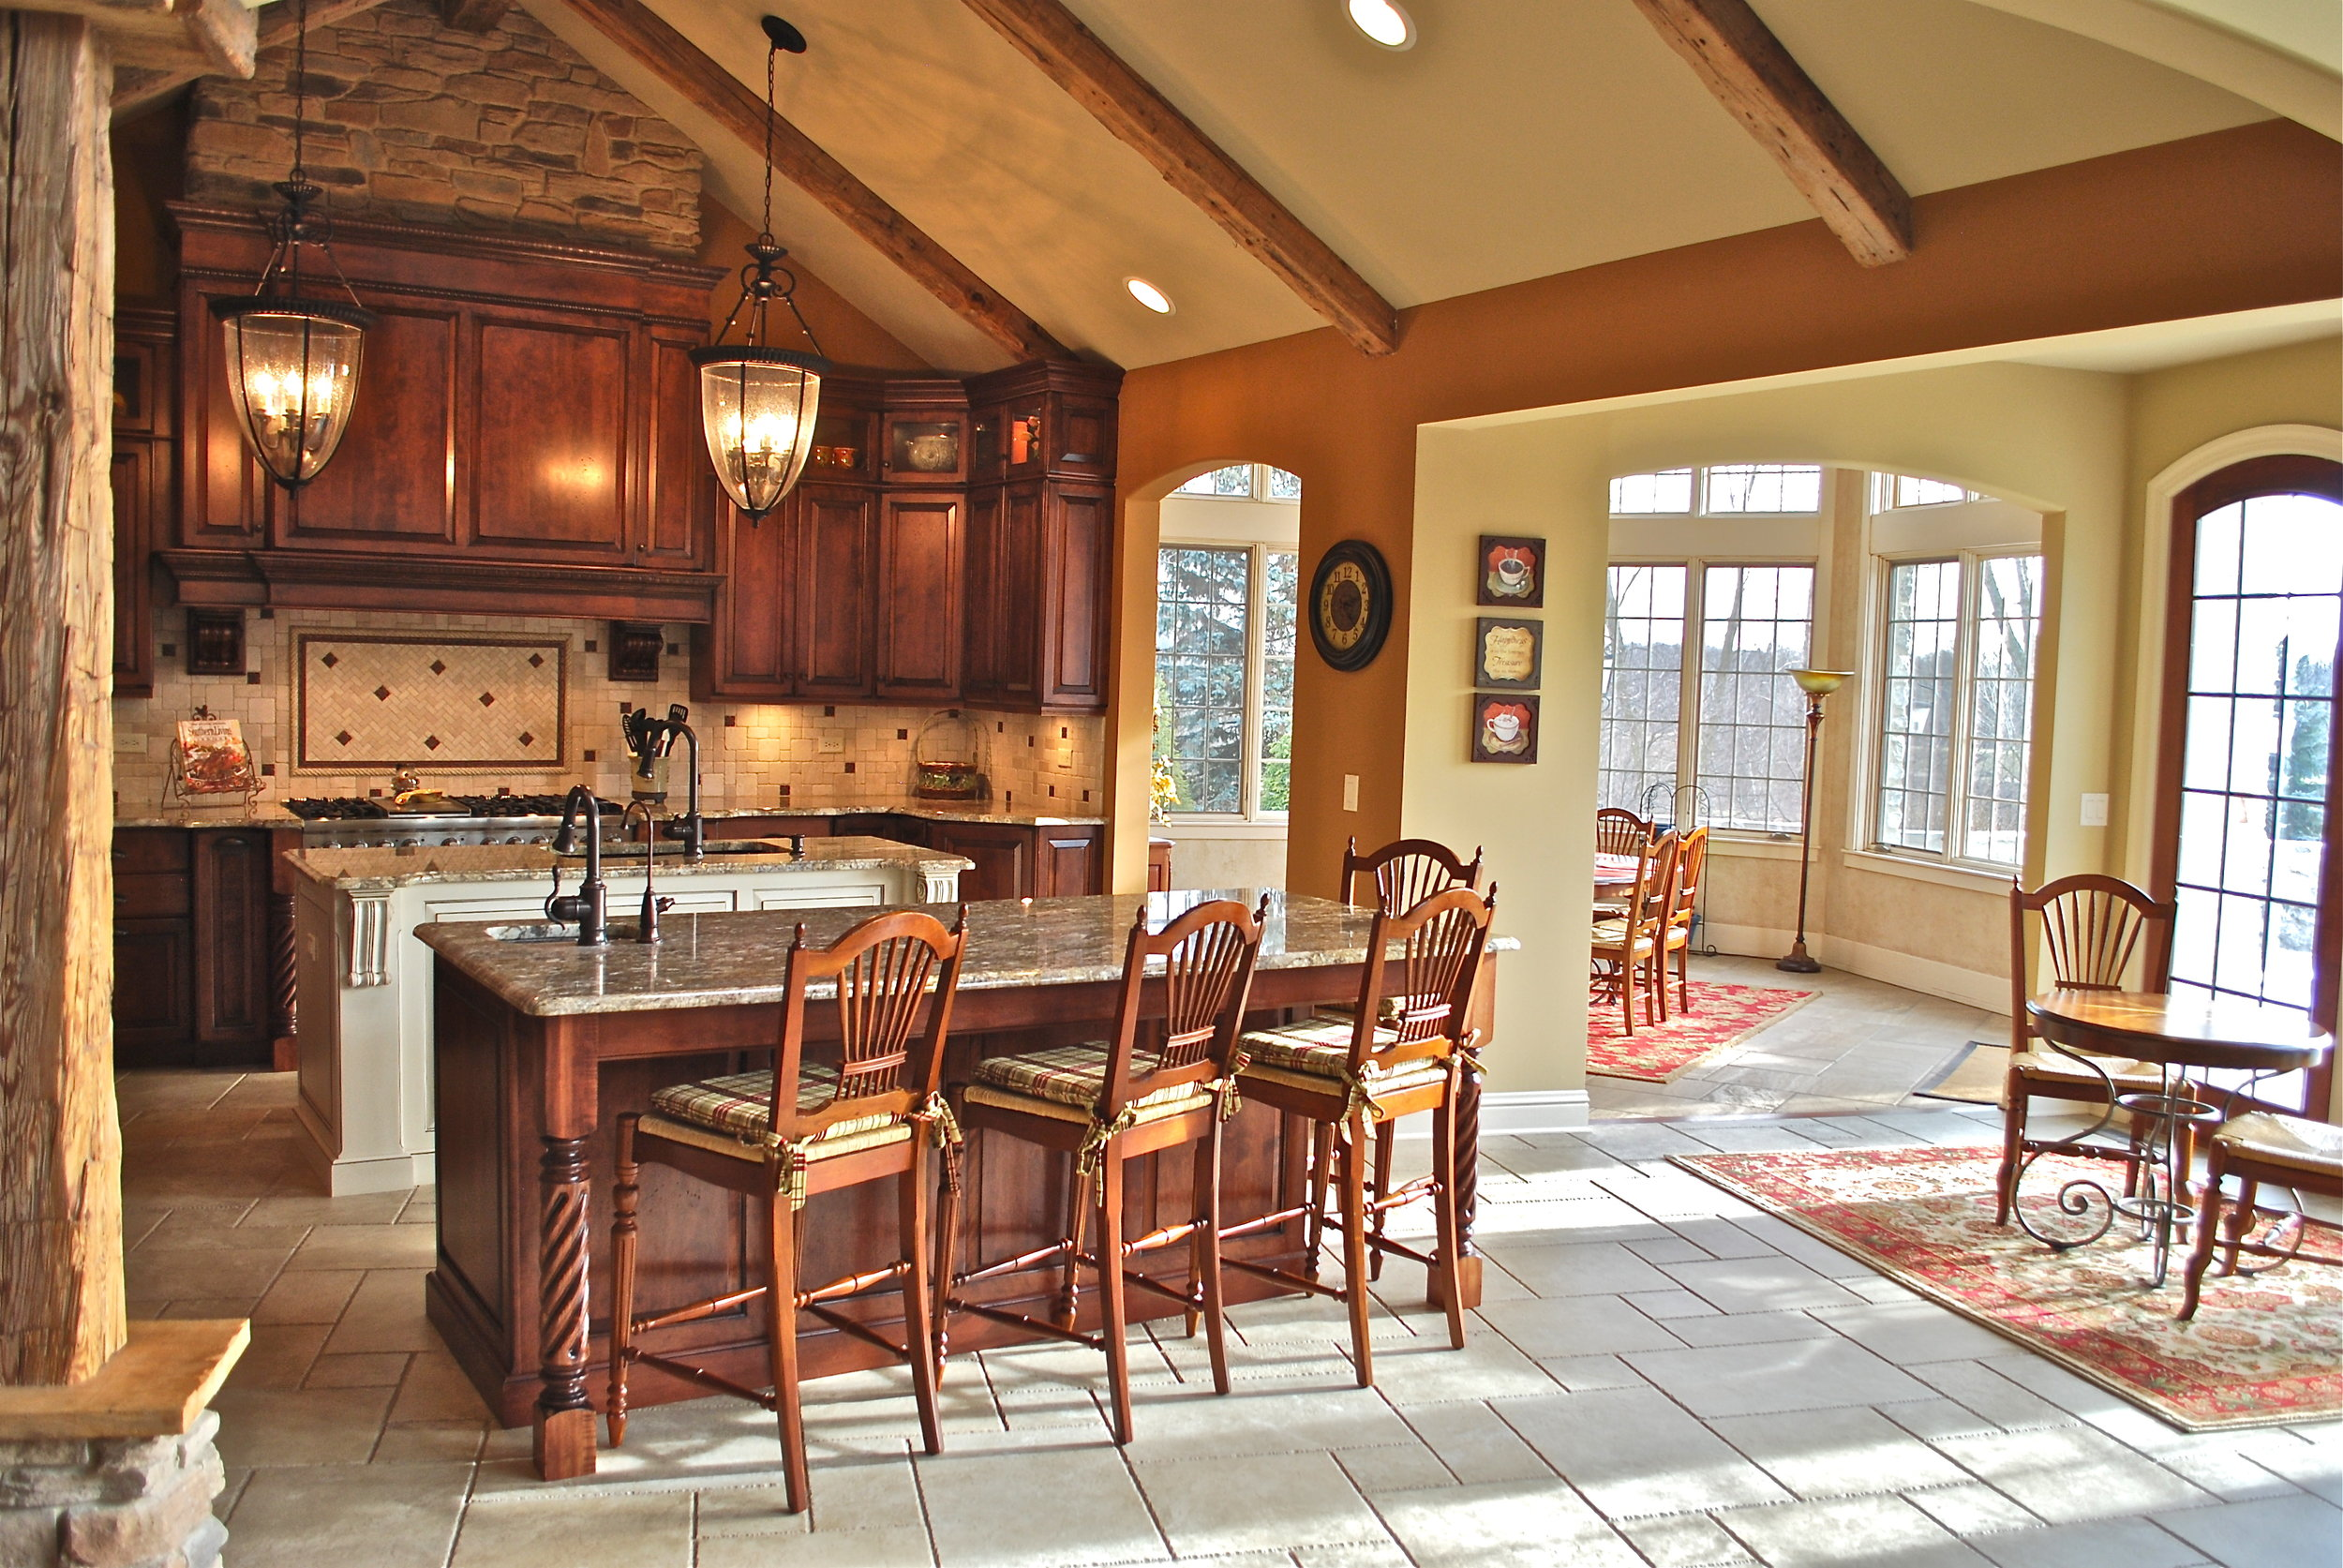 Dream Kitchen inNaperville Illinois. Looking for a Kitchen Contractor? Call Southampton!